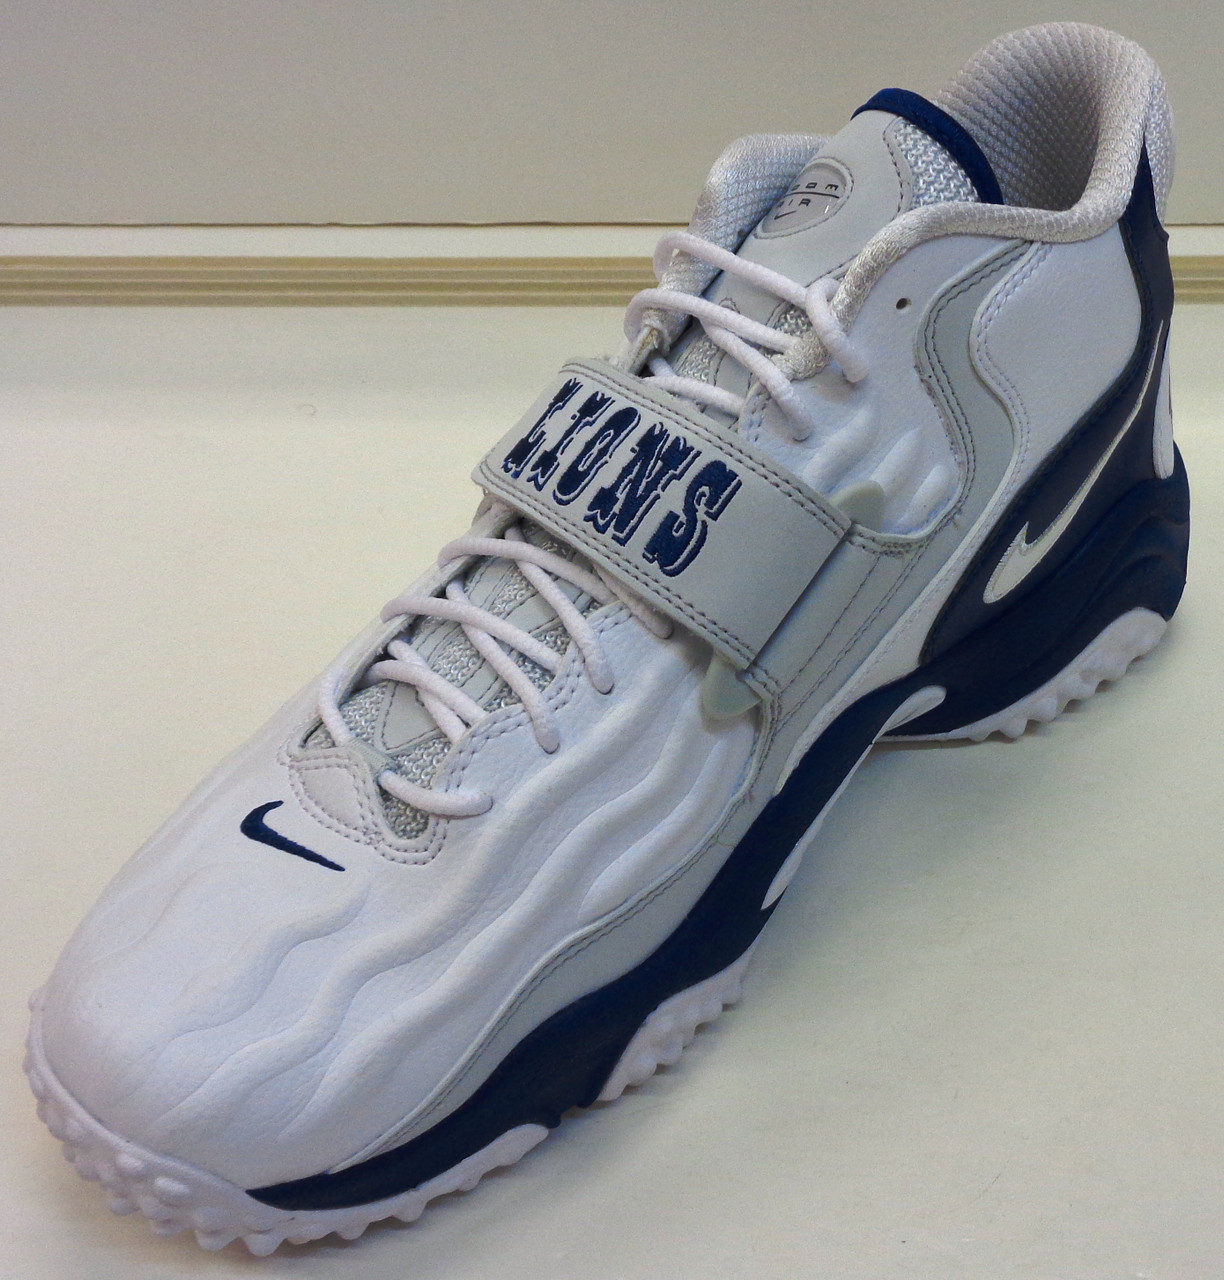 Nike releases Barry Sanders 20th anniversary Air Zoom Turf Jet